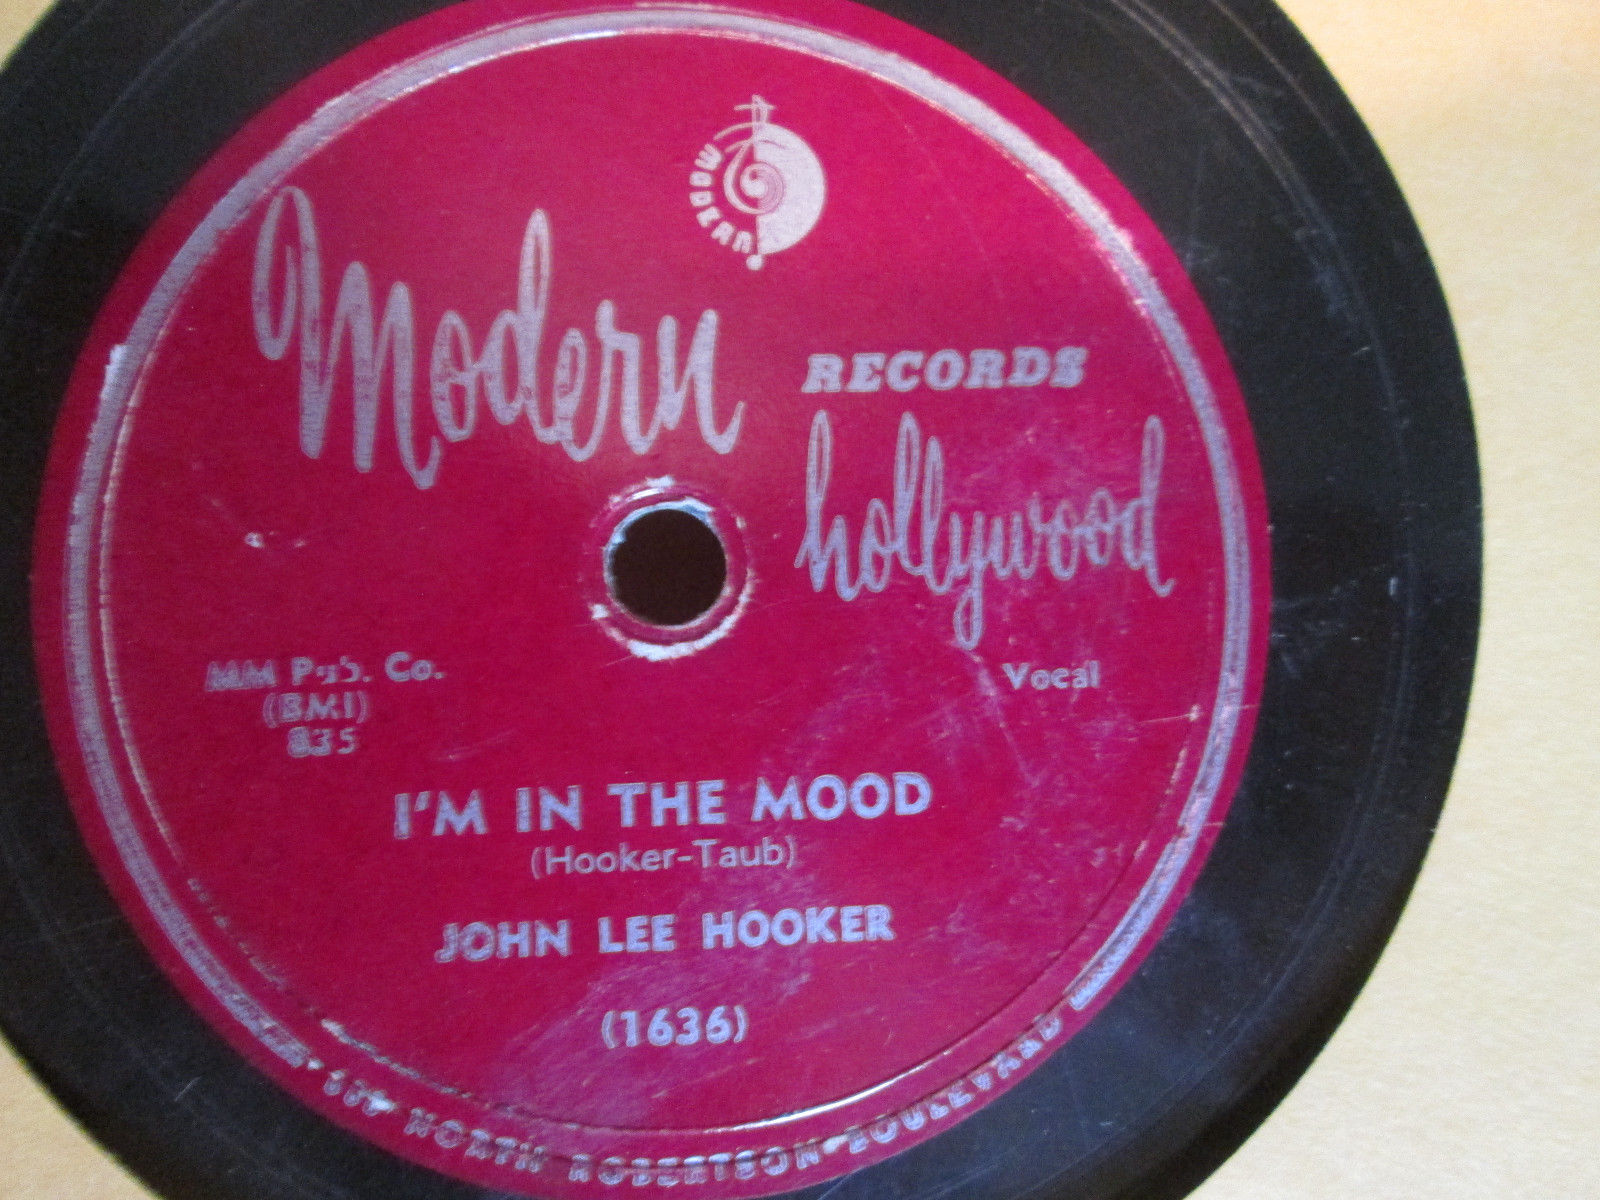 78 Blues JOHN LEE HOOKER I'm In the Mood/ How Can You Do It Modern 1636